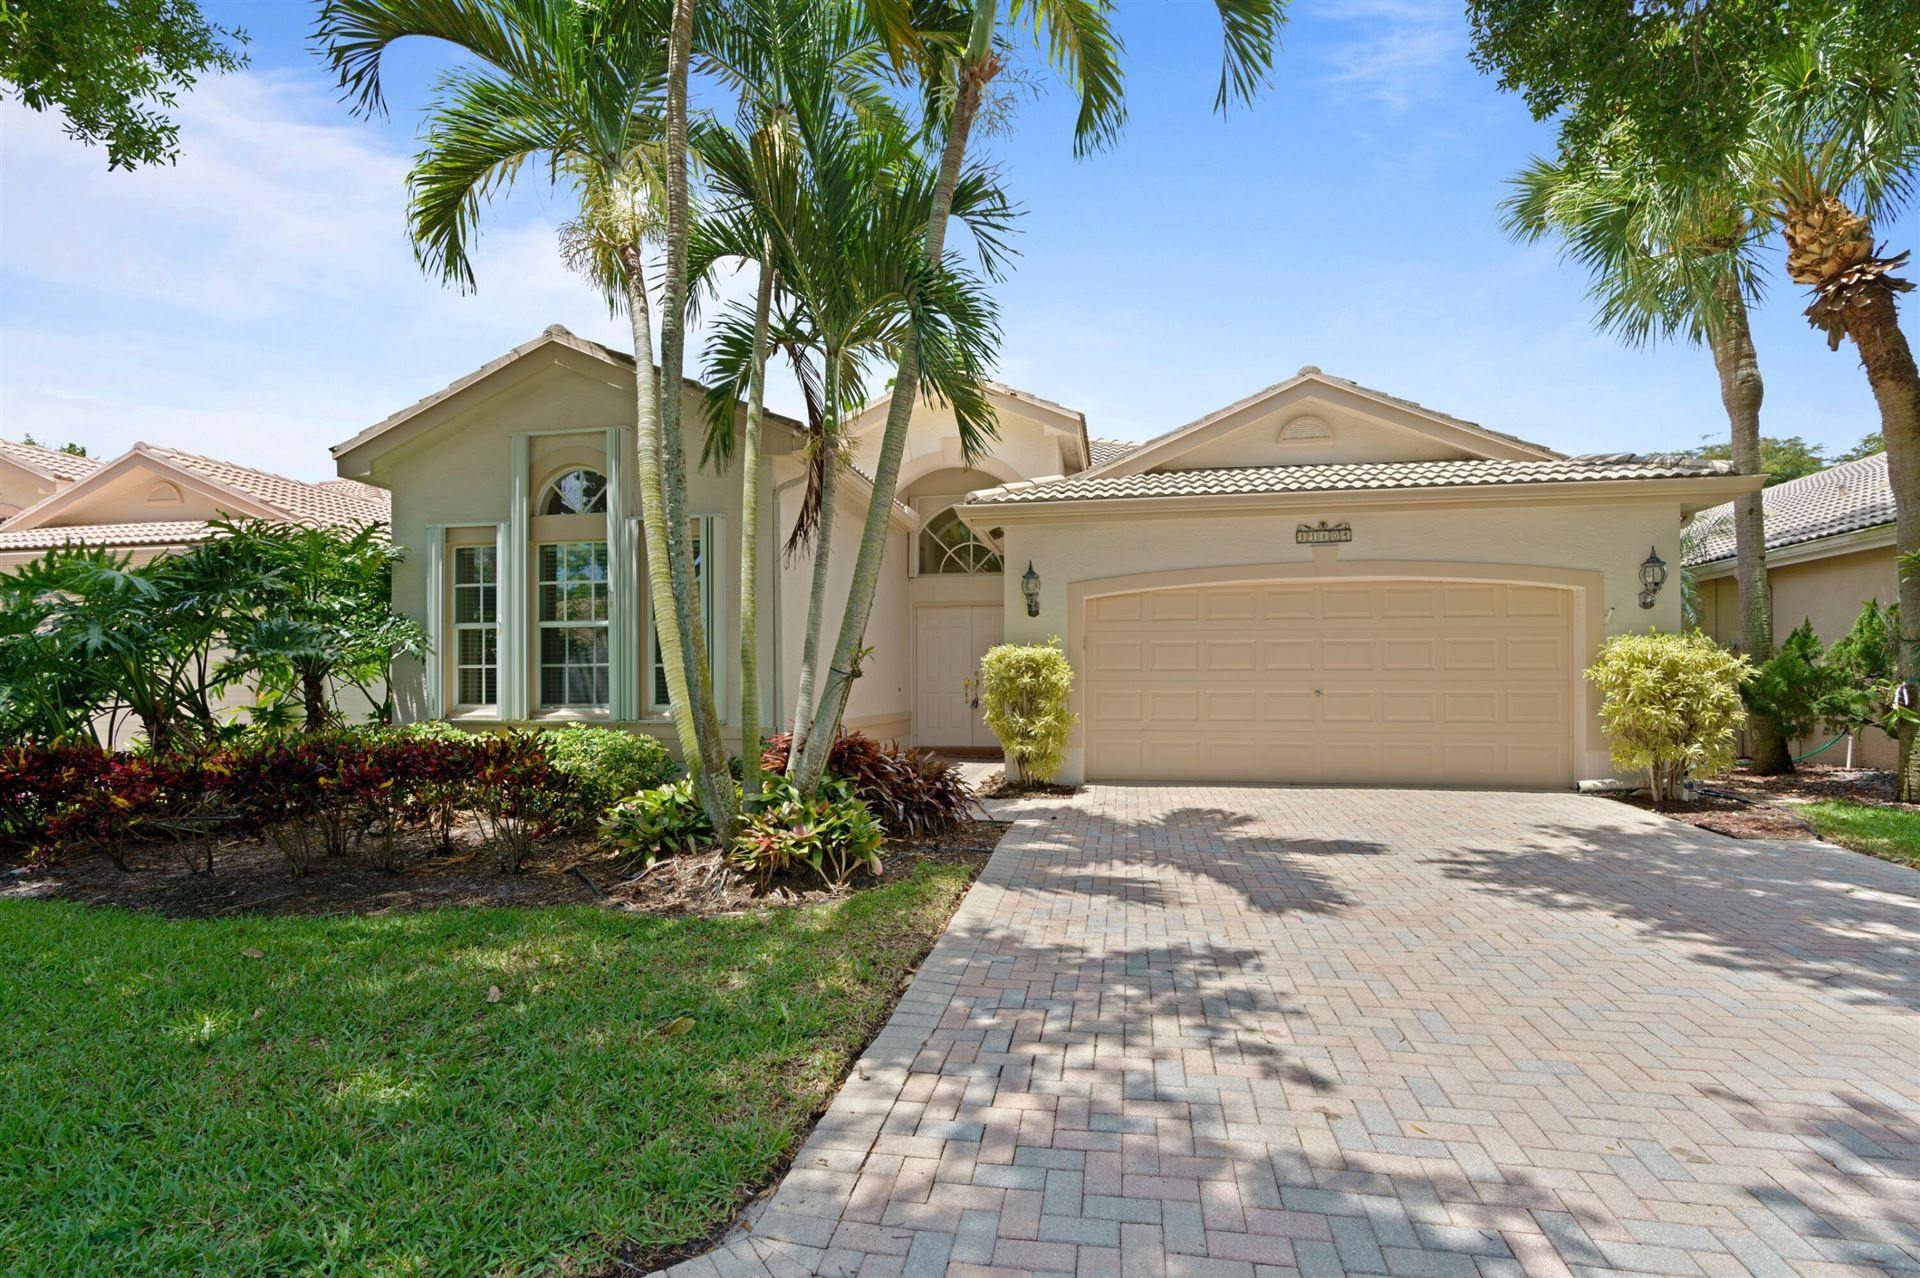 11804 Castellon Court, Boynton Beach, FL 33437 - #: RX-10715511